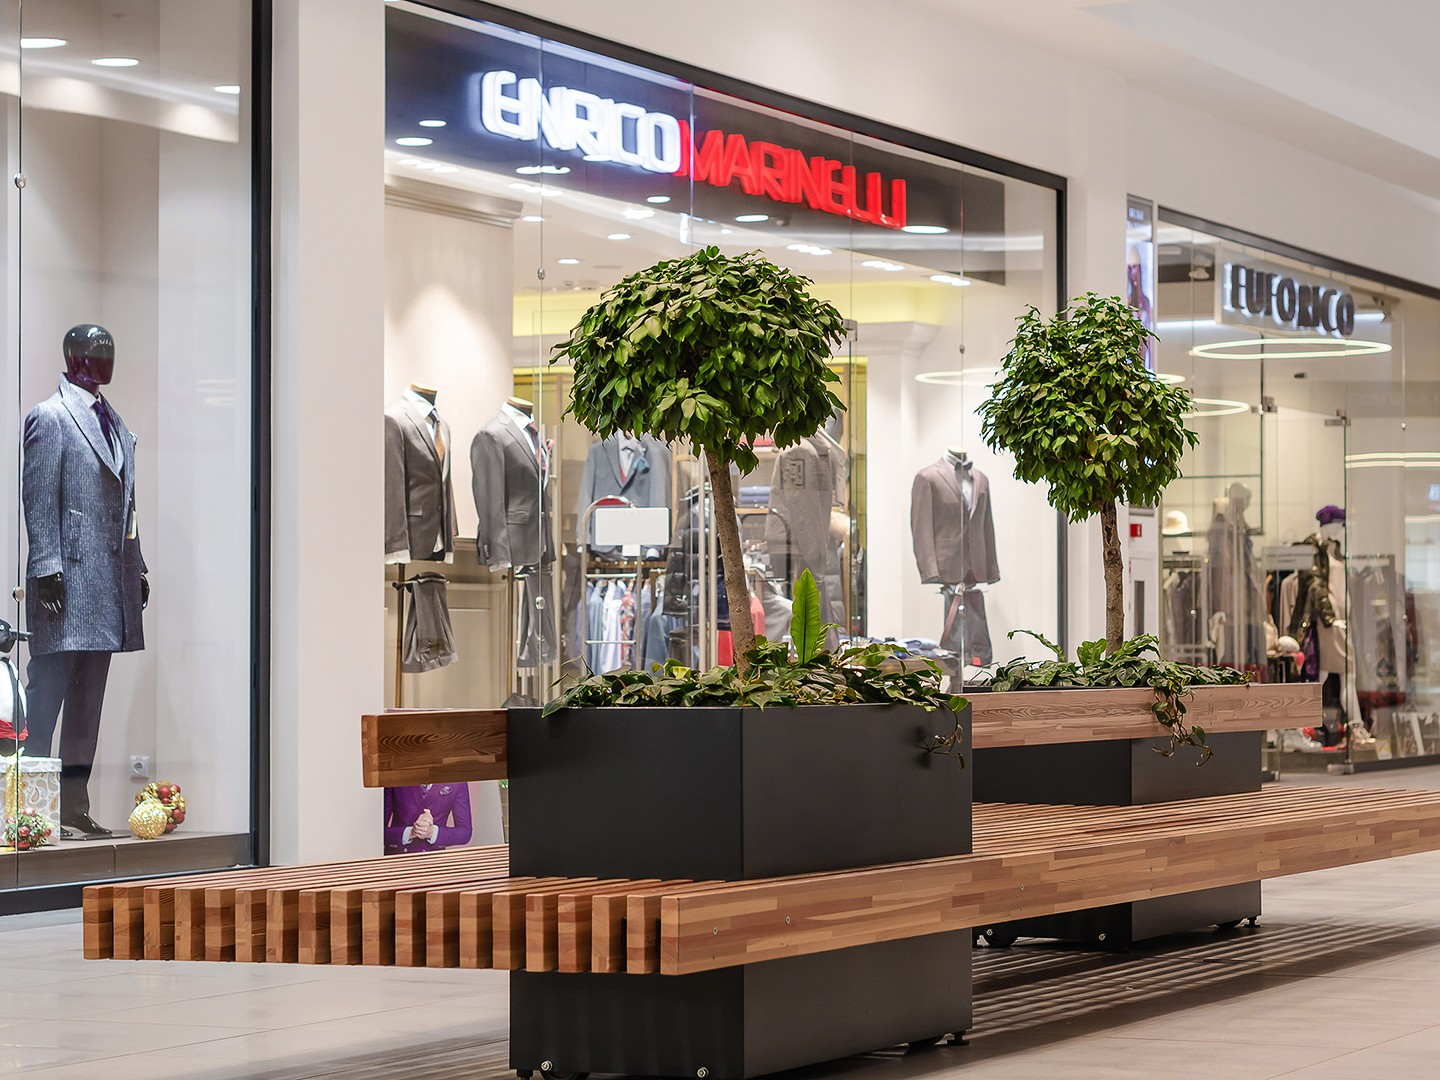 Recreation areas in a shopping center. Professional interior photography.